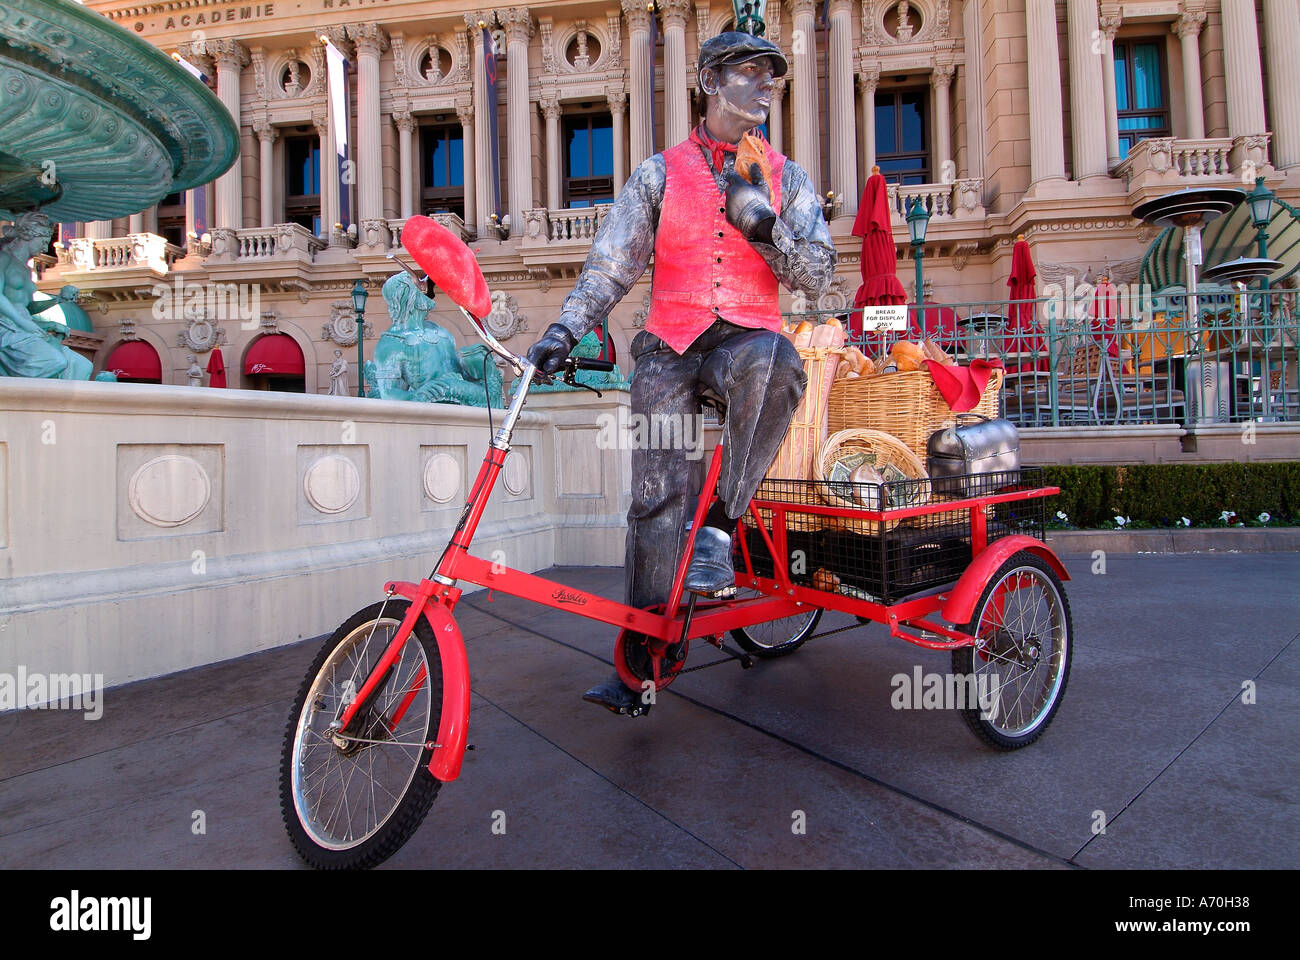 Mime with his bike in front of Paris casino in Las Vegas Nevada - Stock Image